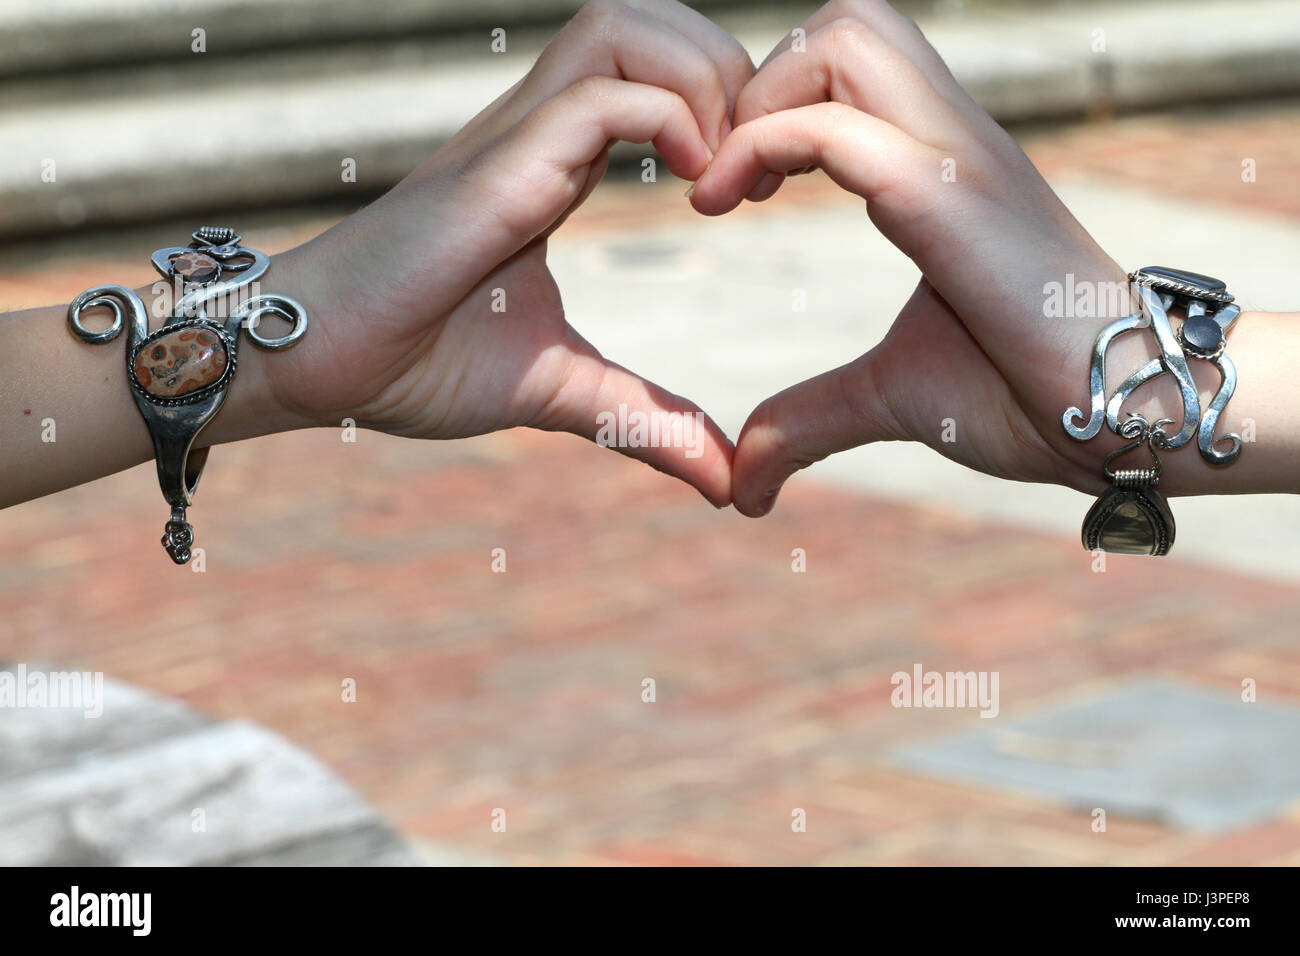 Two hands with metal bracelets shaping a heart - Stock Image